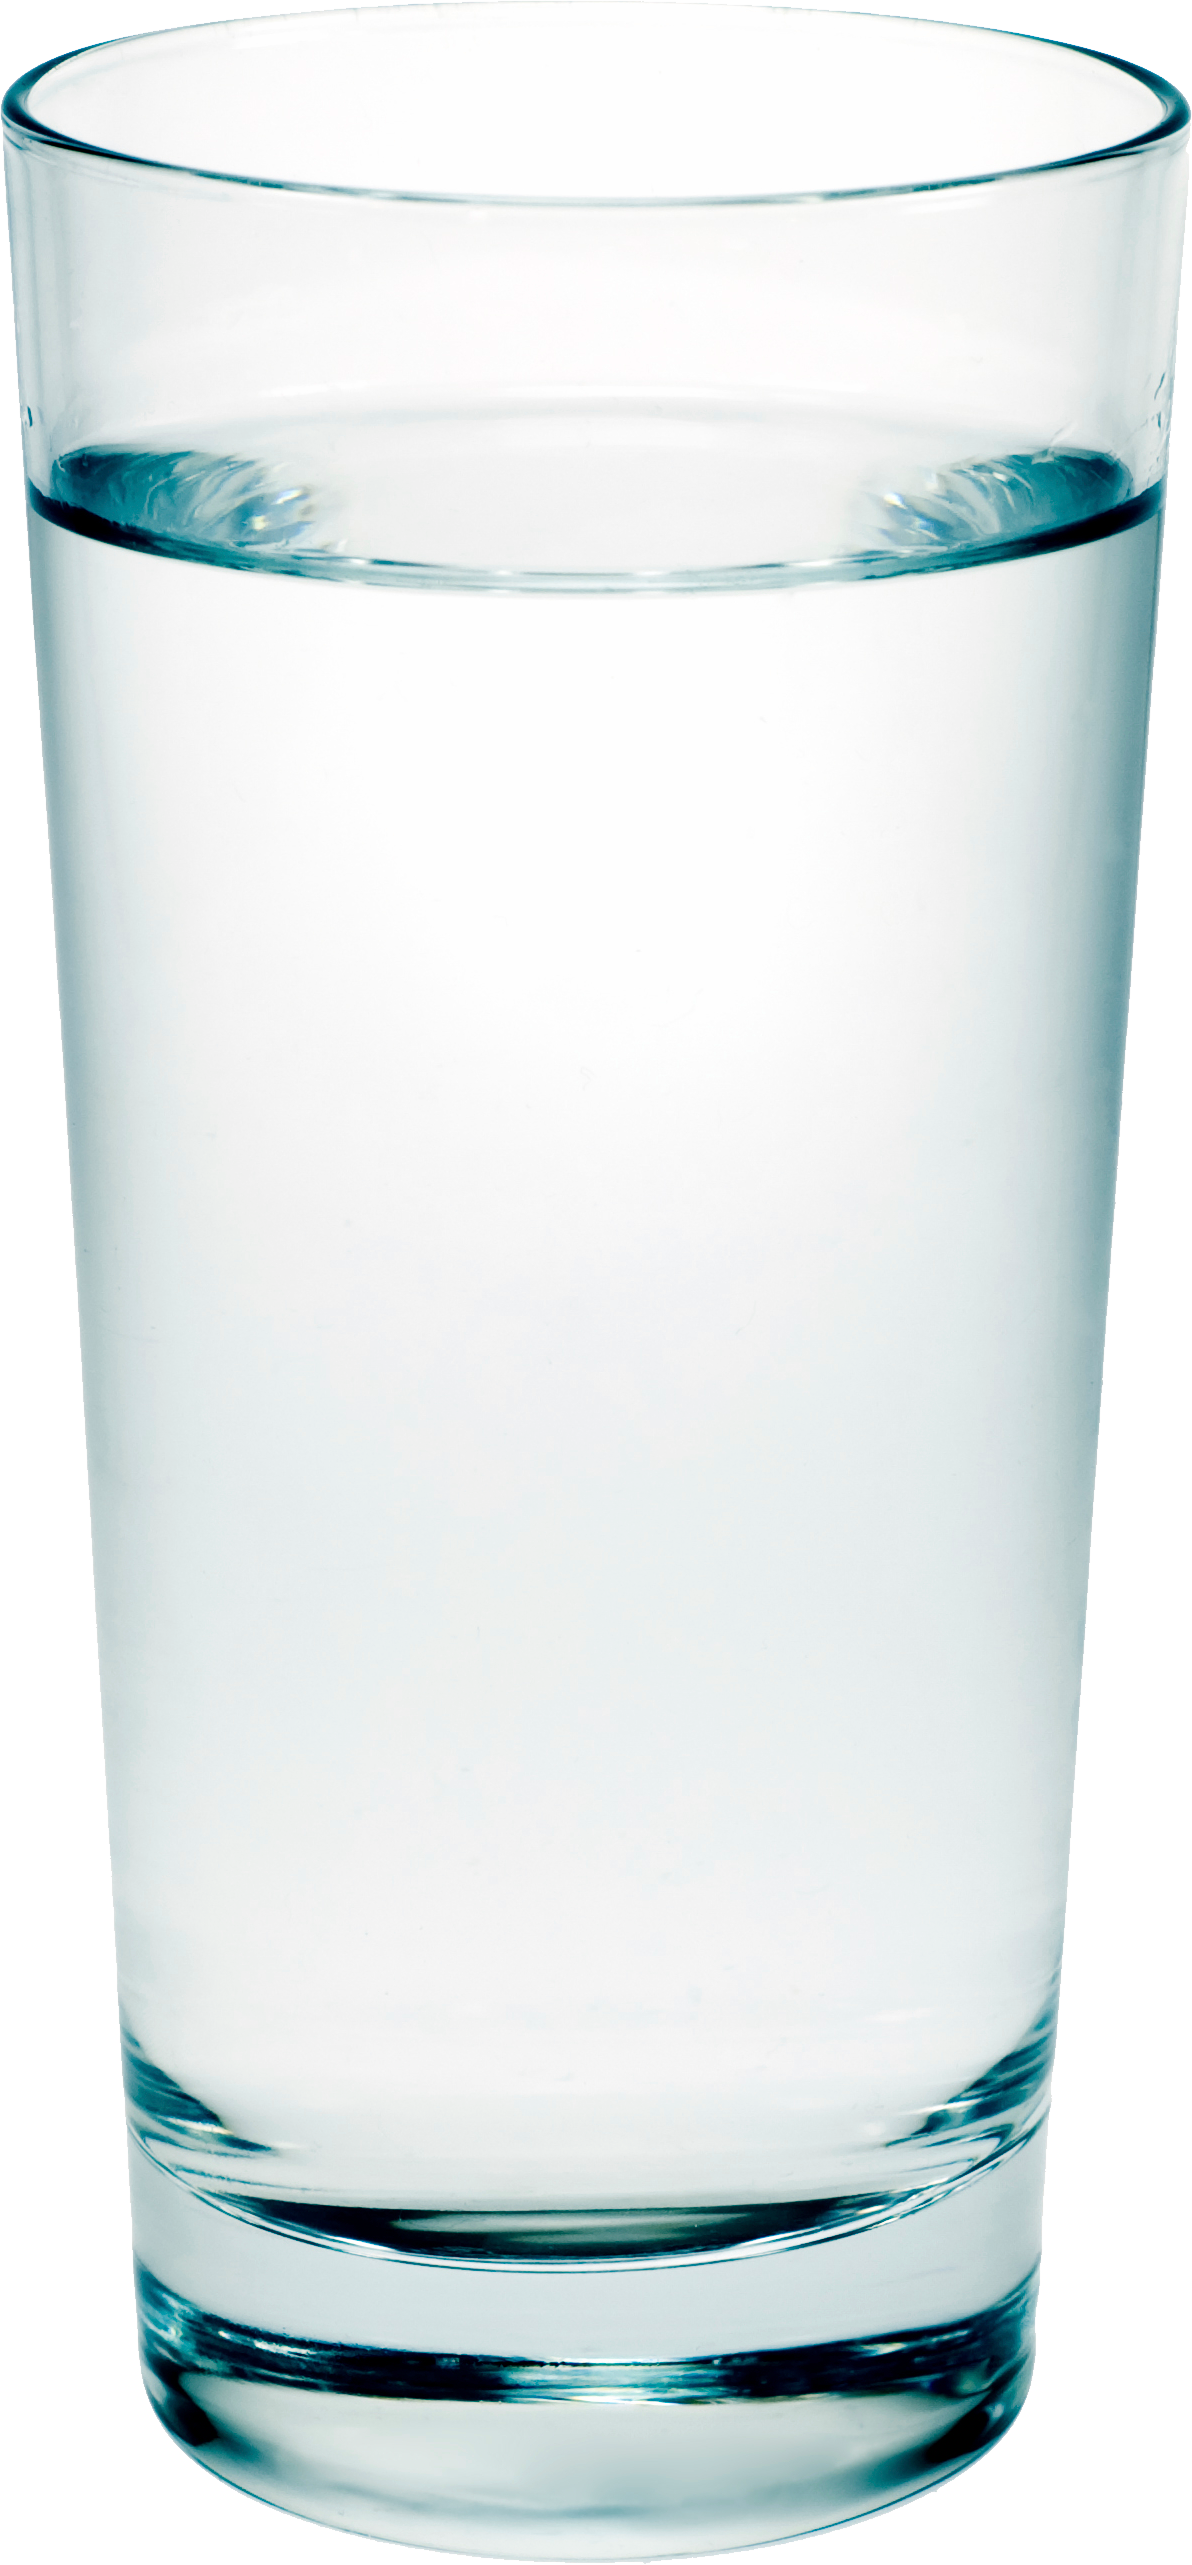 Cup clipart ice water. Glass png images free